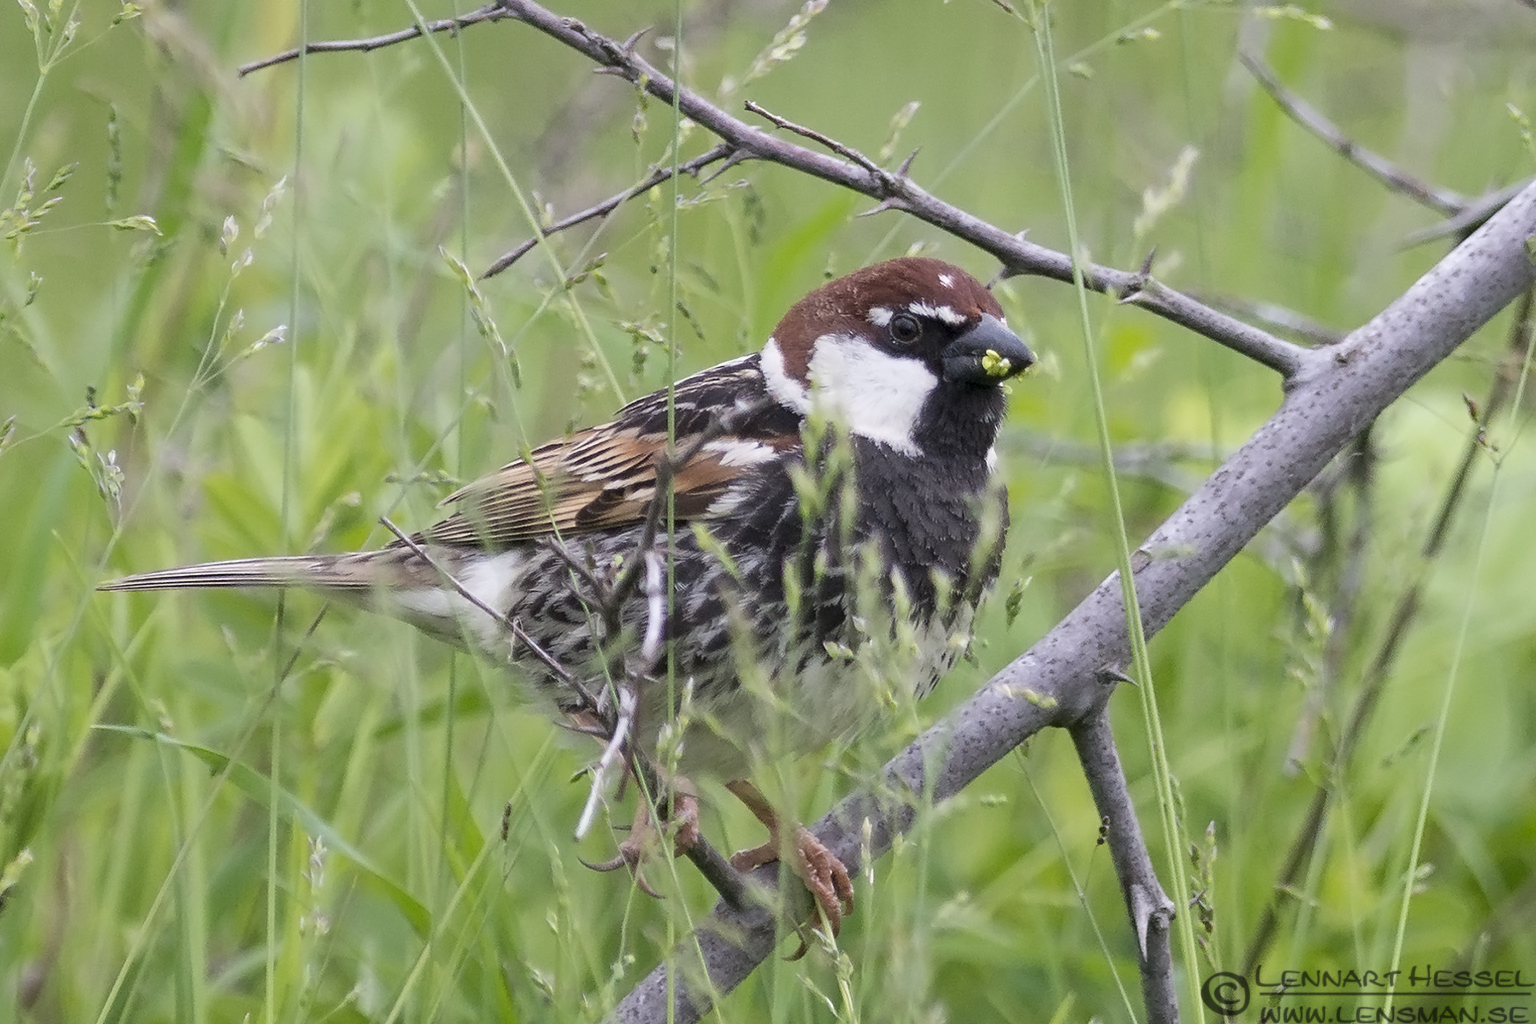 Spanish Sparrow in Bulgaria